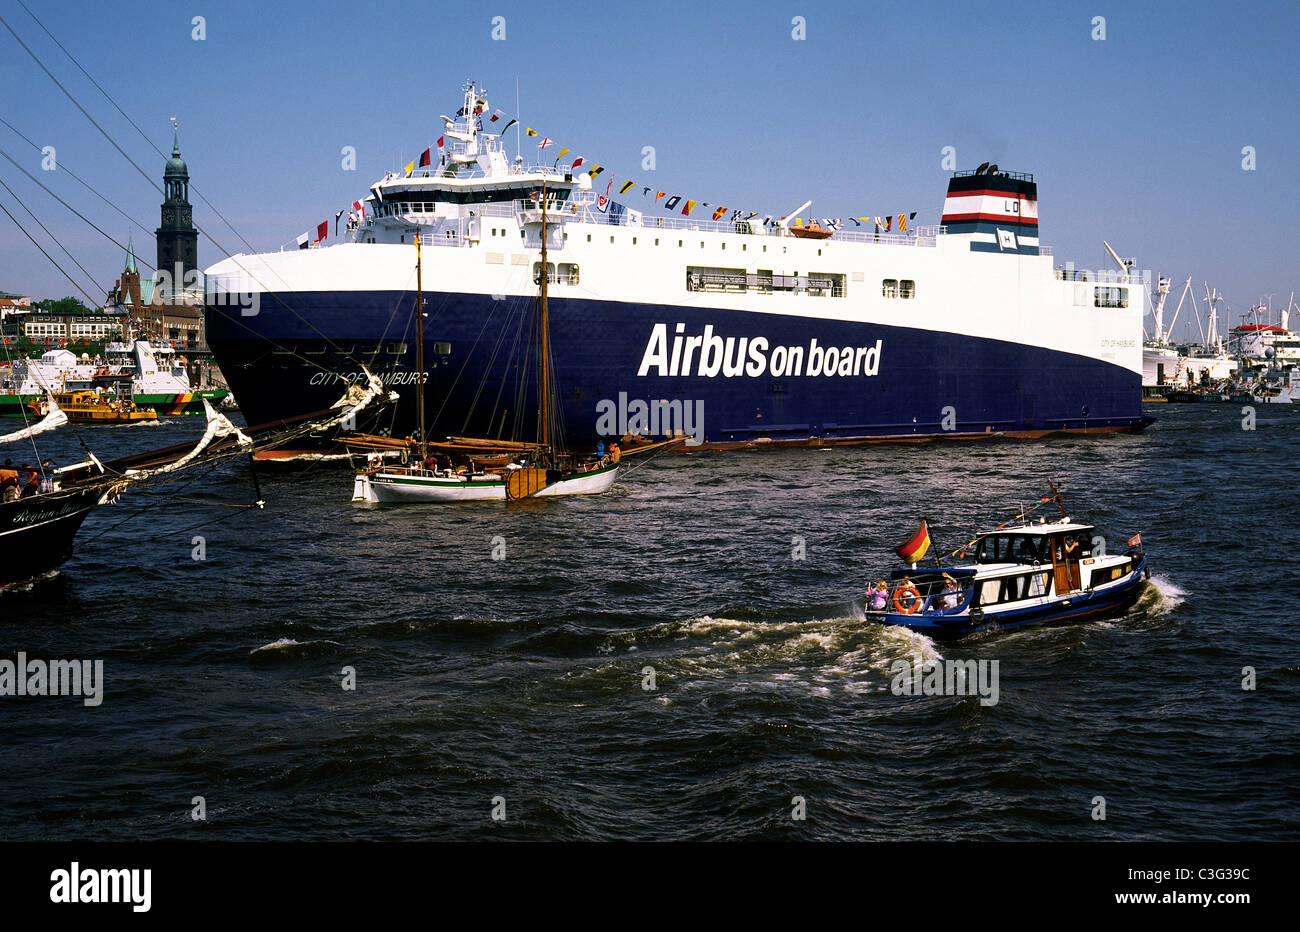 RoRo vessel City of Hamburg taking Airbus A380 parts from